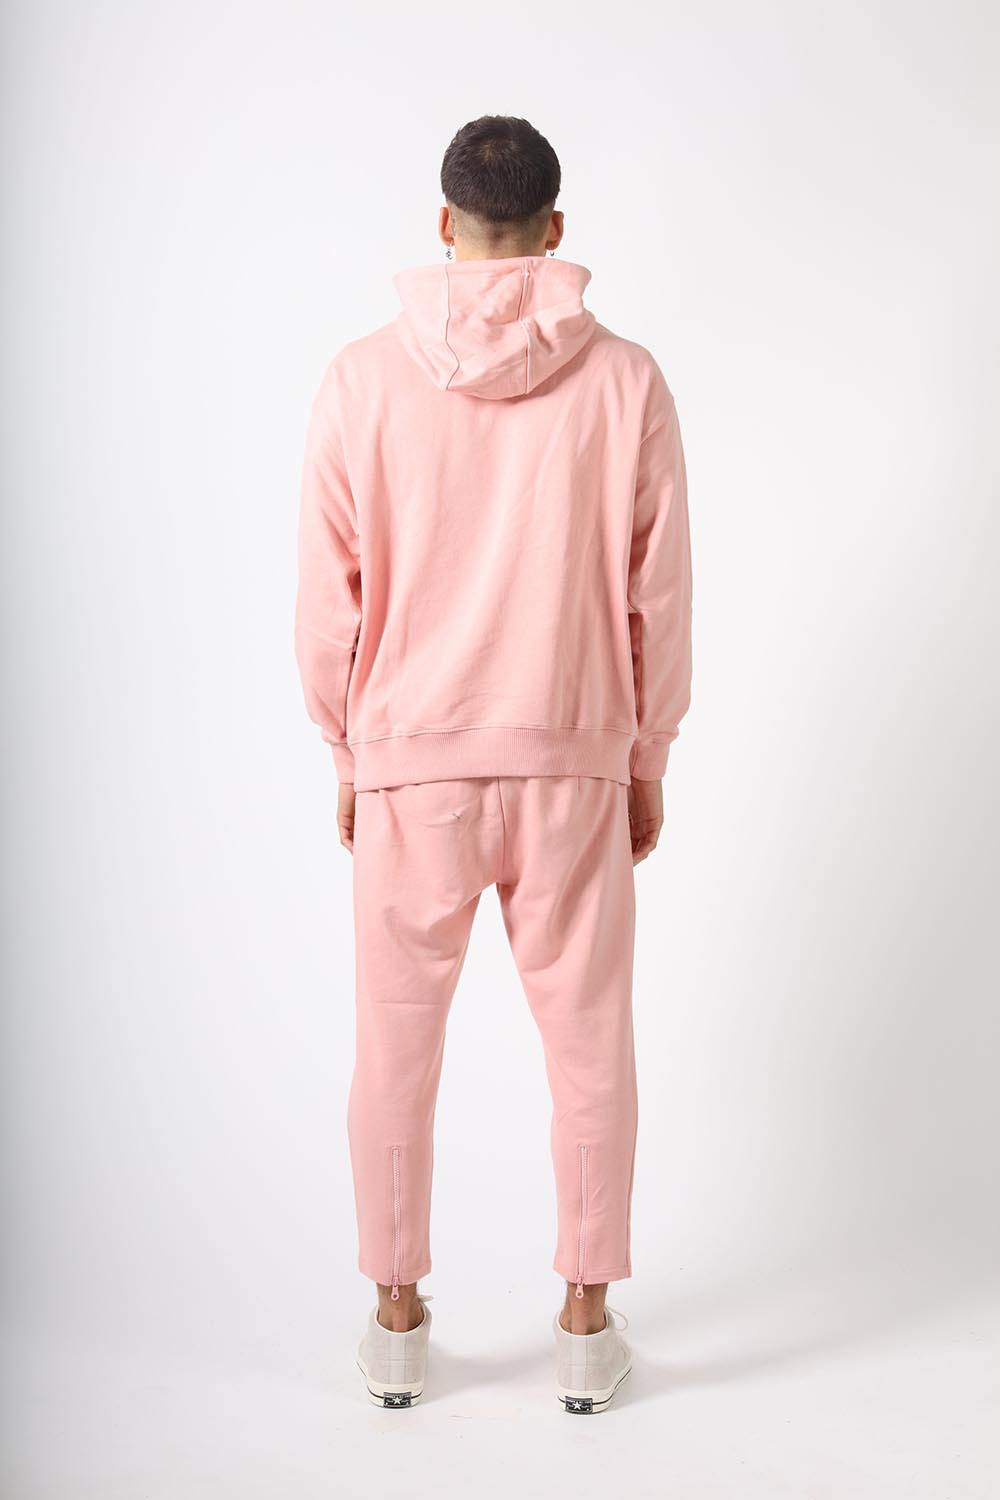 CHMPGN CLASSIQUE - BLUSH PINK